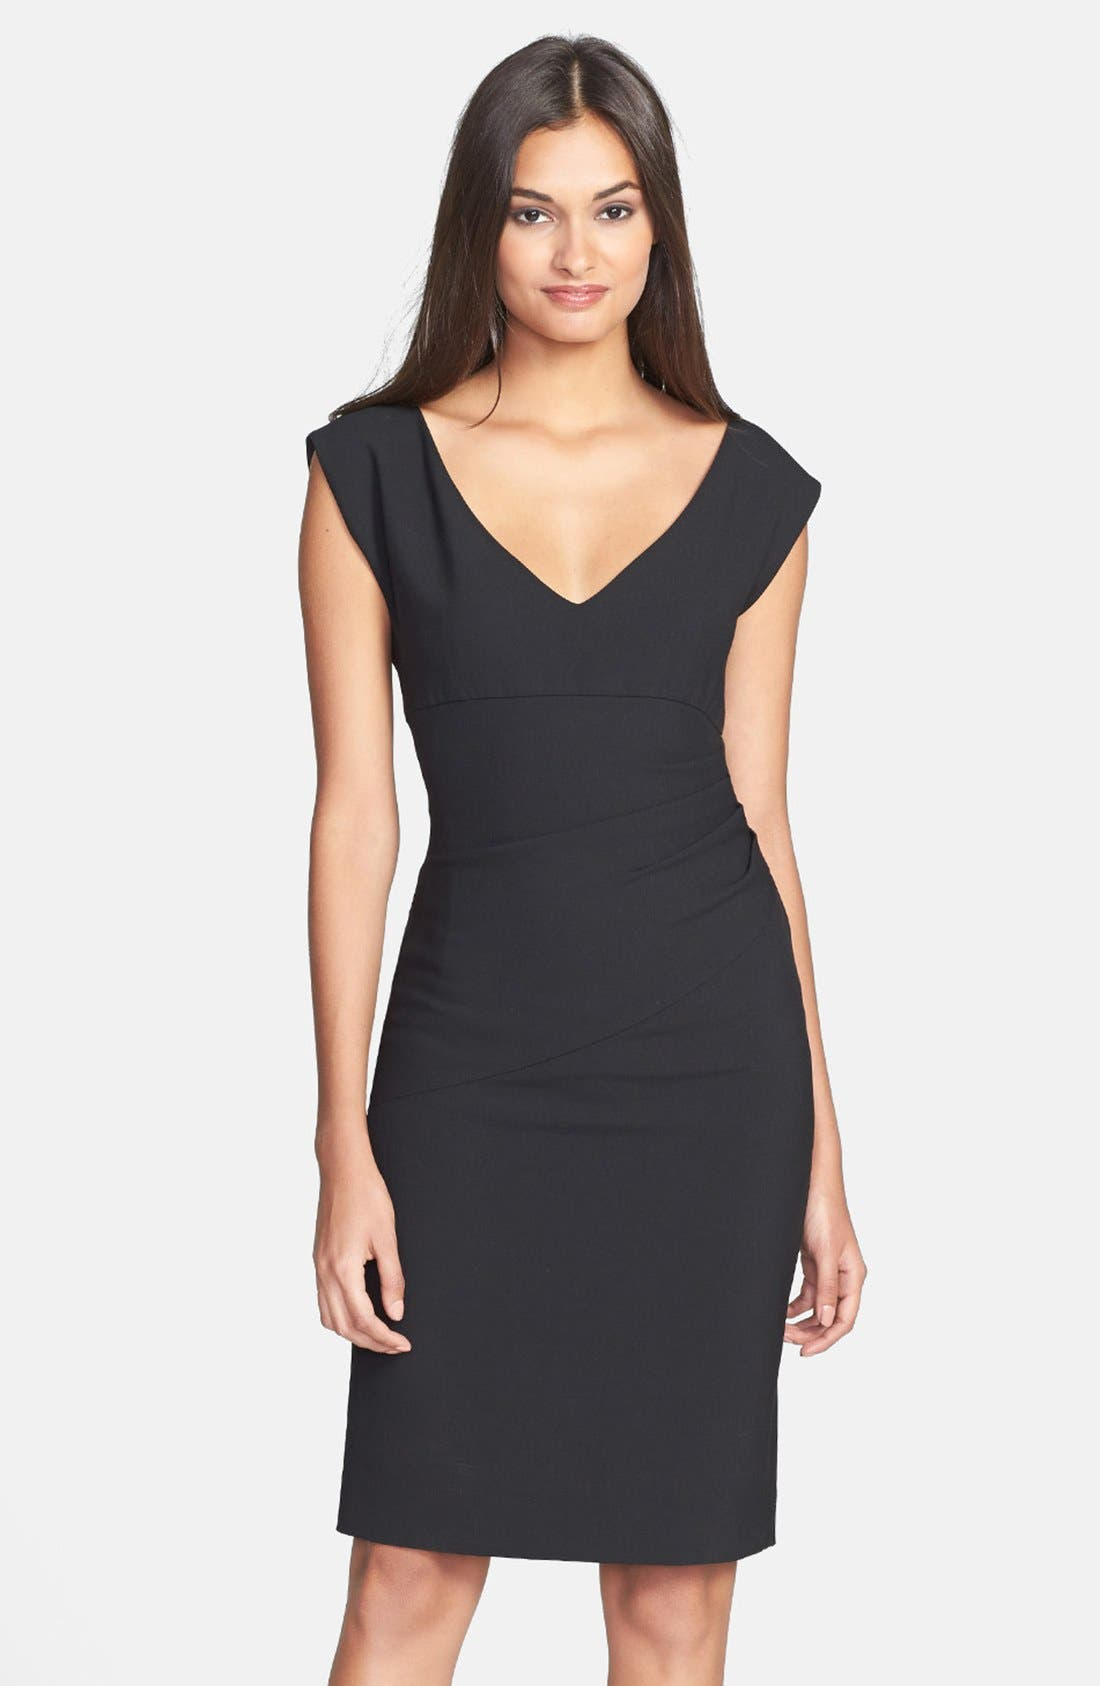 DIANE VON FURSTENBERG 'Bevin' Ruched Knit Sheath Dress, Main, color, 001